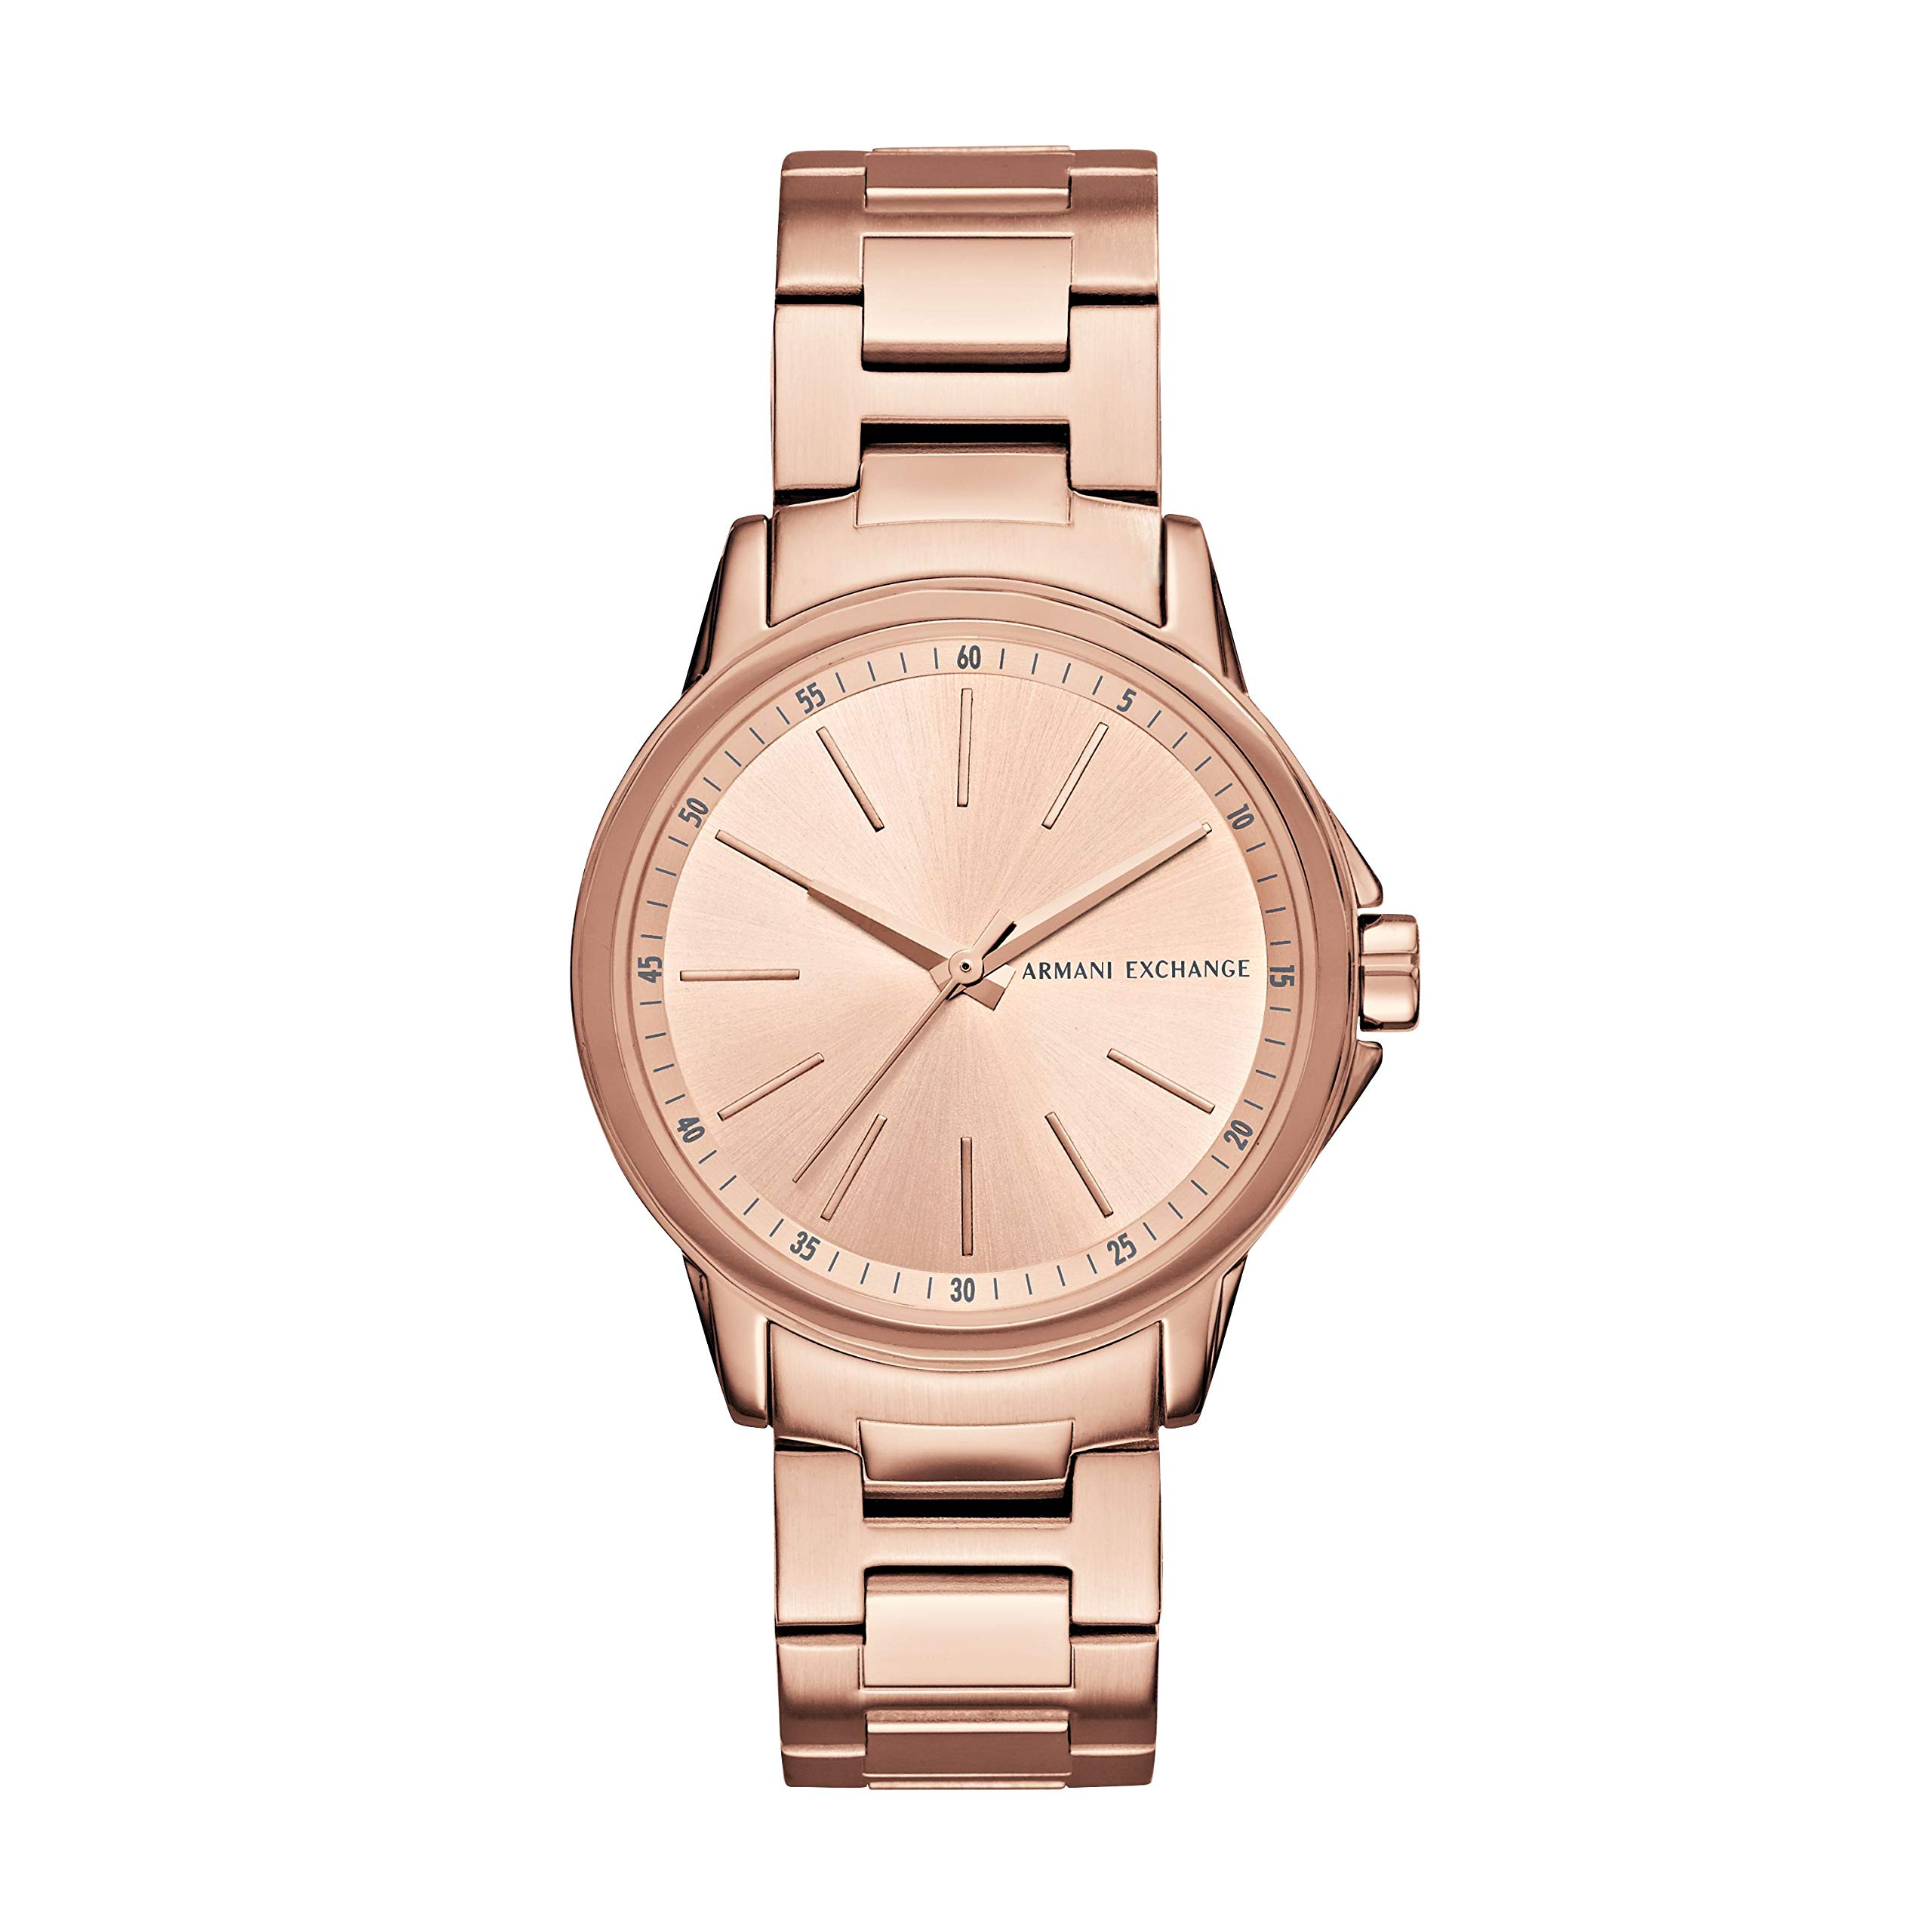 Armani Exchange Women's AX4347 Rose Gold Watch by A|X Armani Exchange